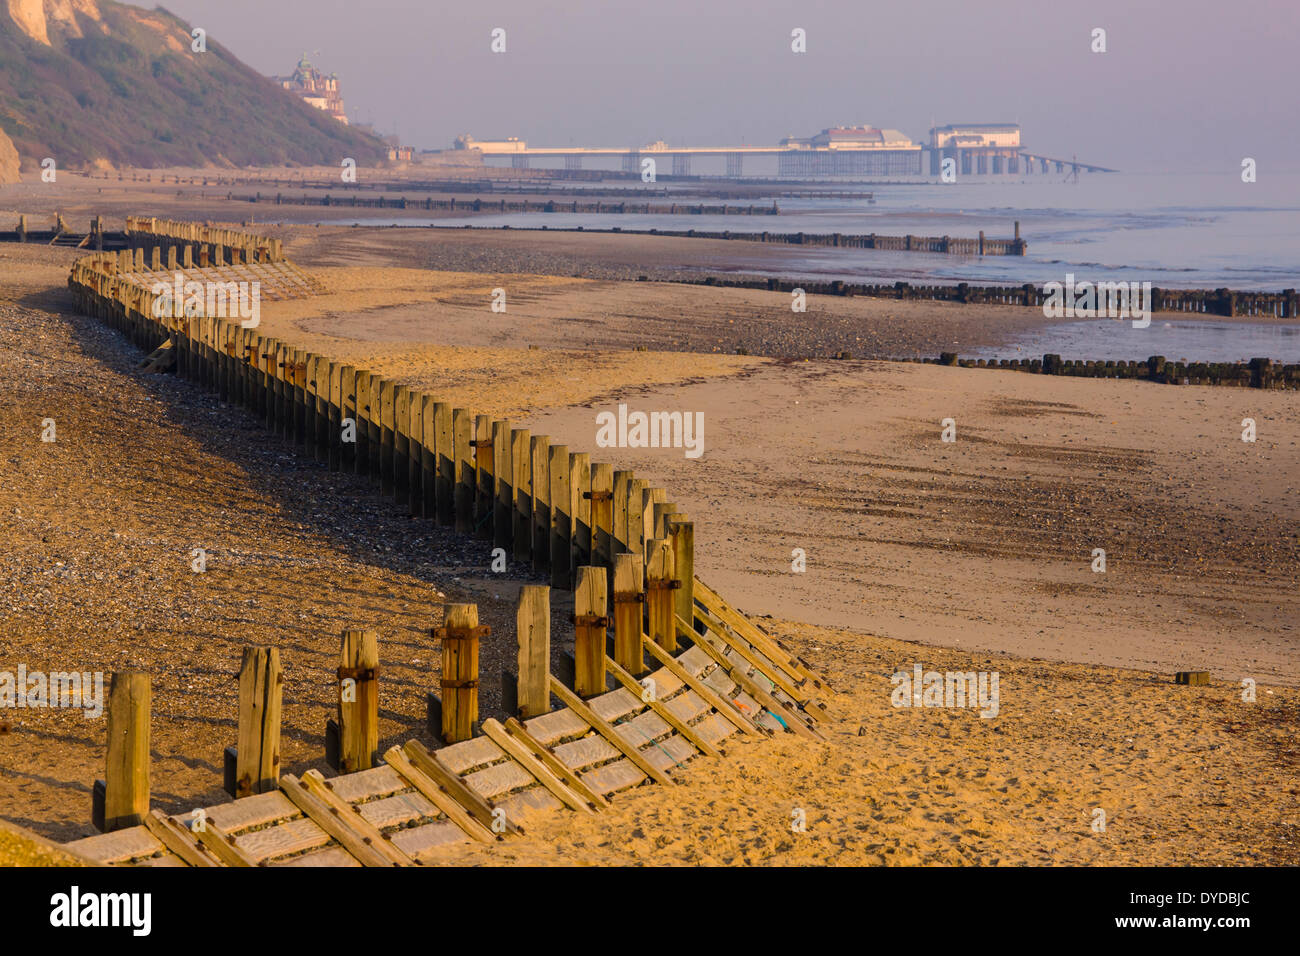 Breakwaters at Overstrand beach with Cromer pier in the distance. - Stock Image